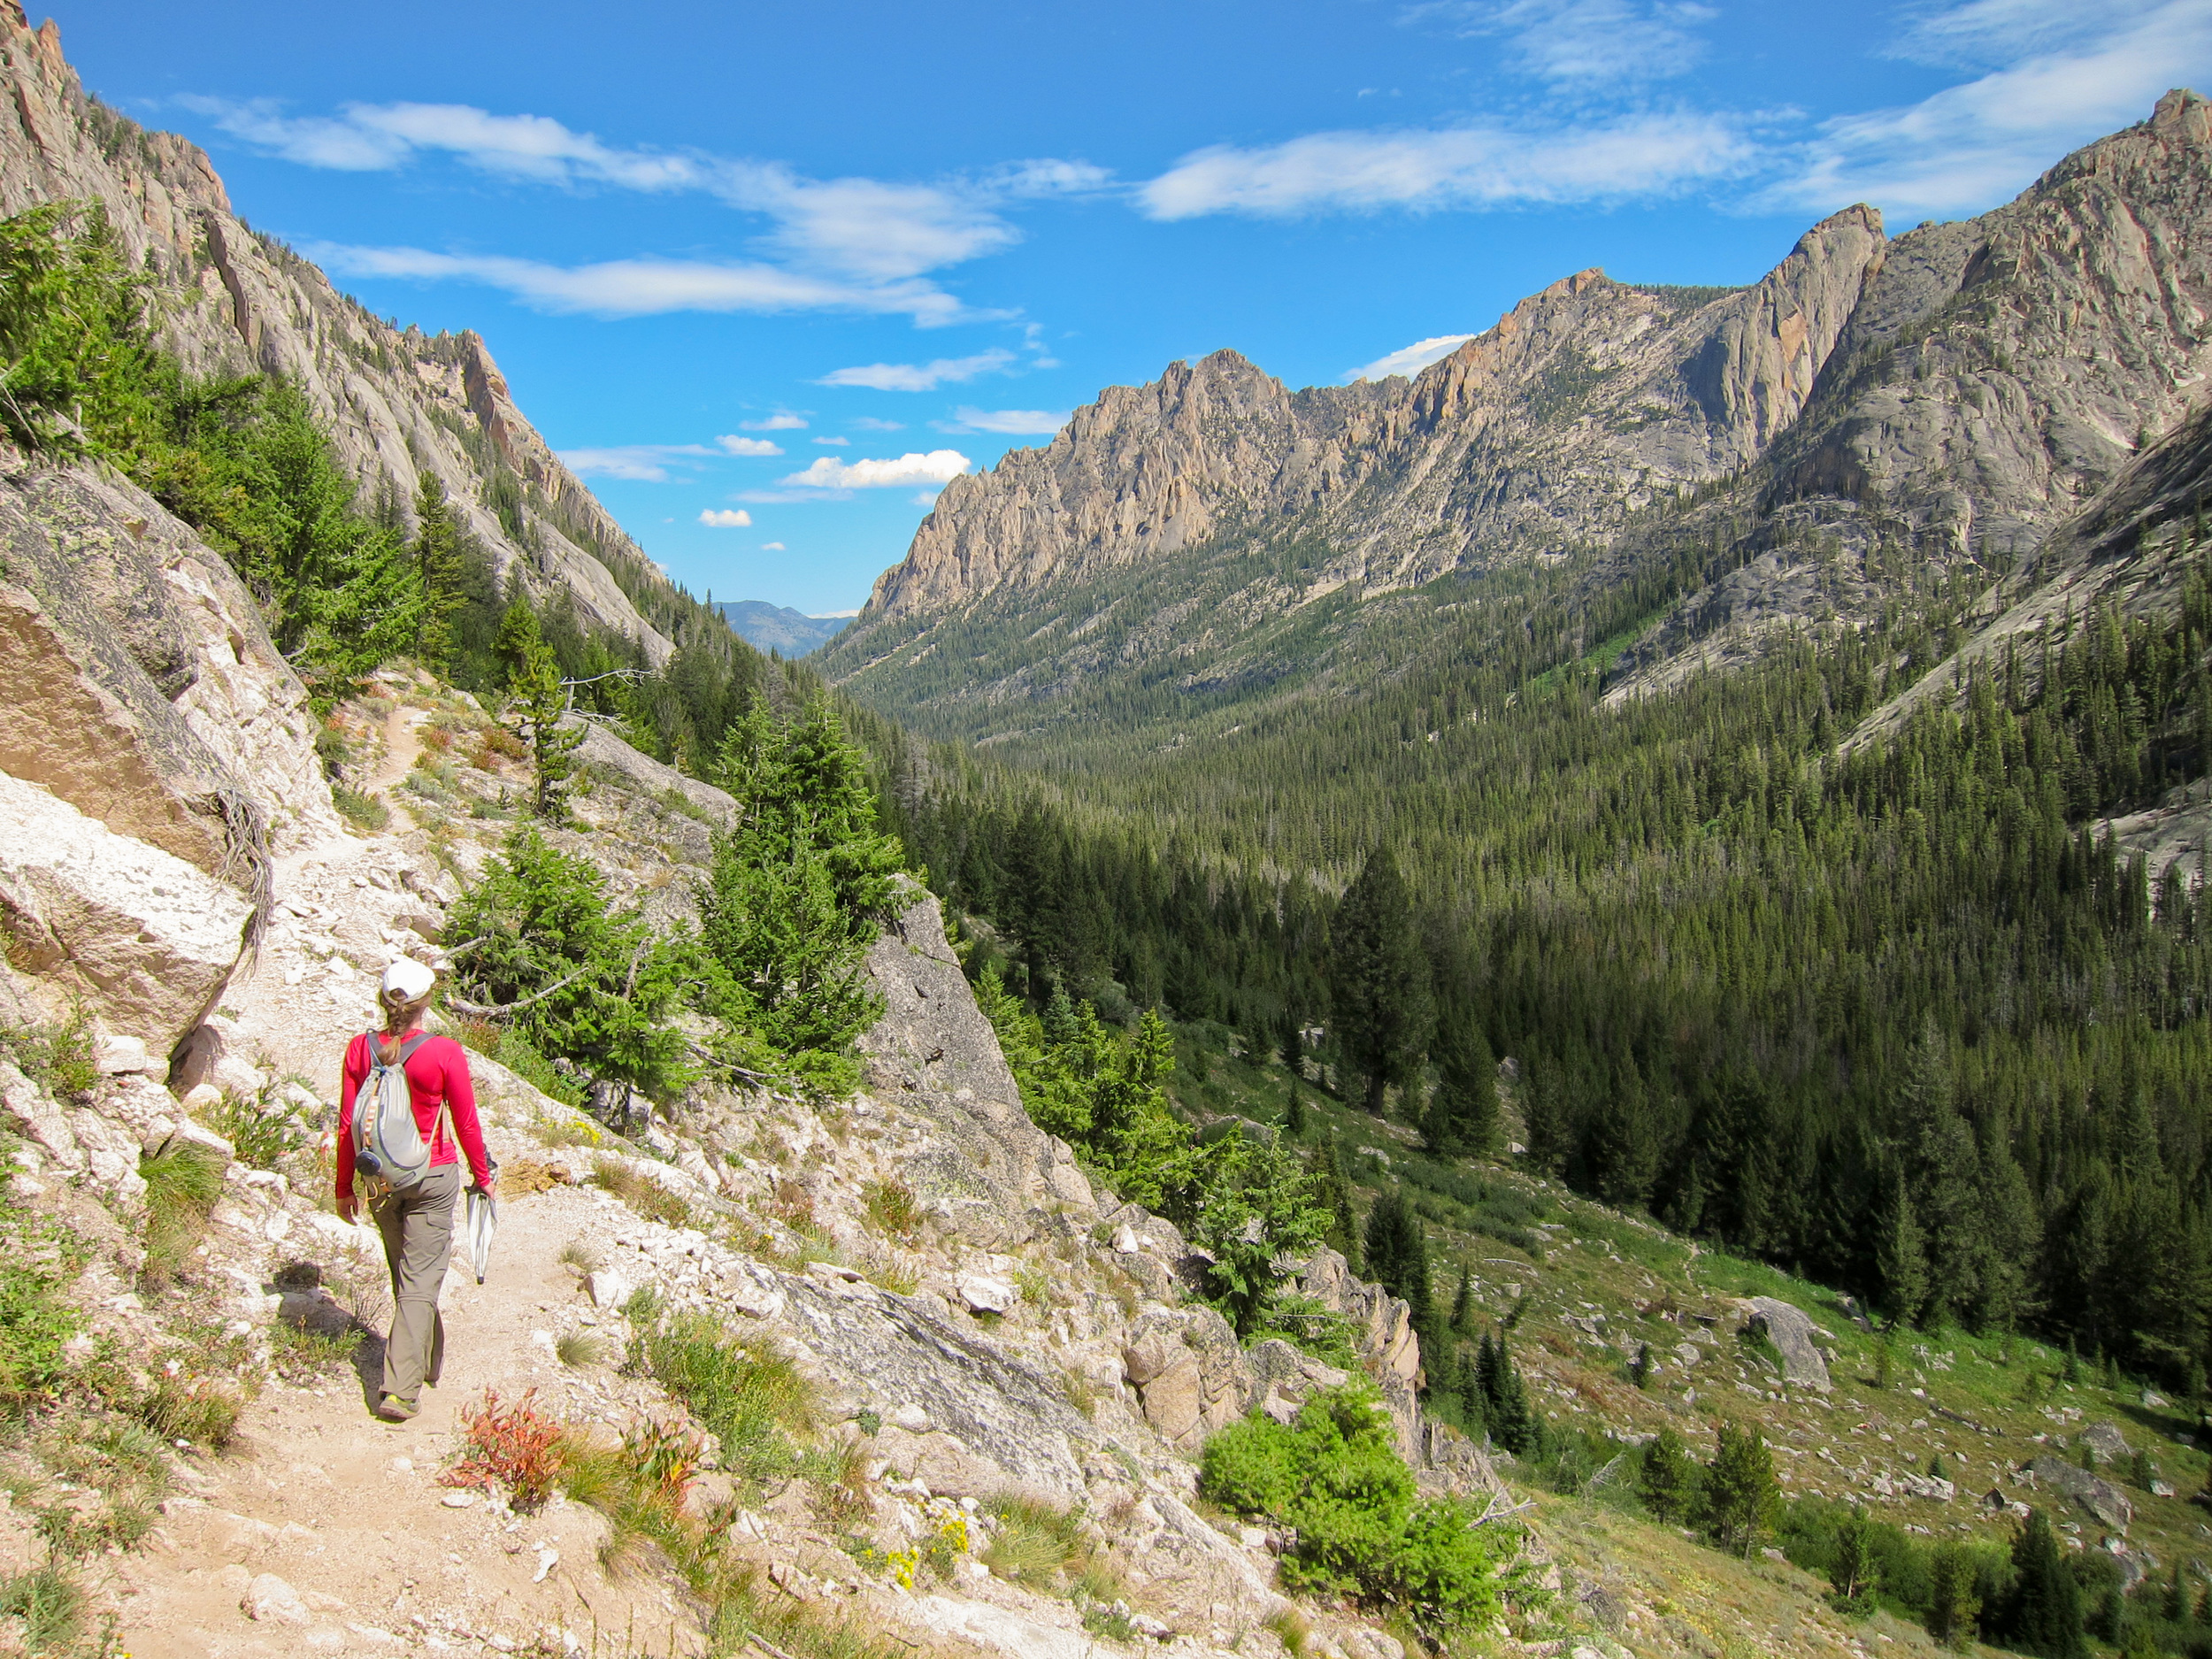 Hiker and Redfish Canyon from Alpine Lake Trail in Sawtooth Wilderness. Photo credit: pixabay